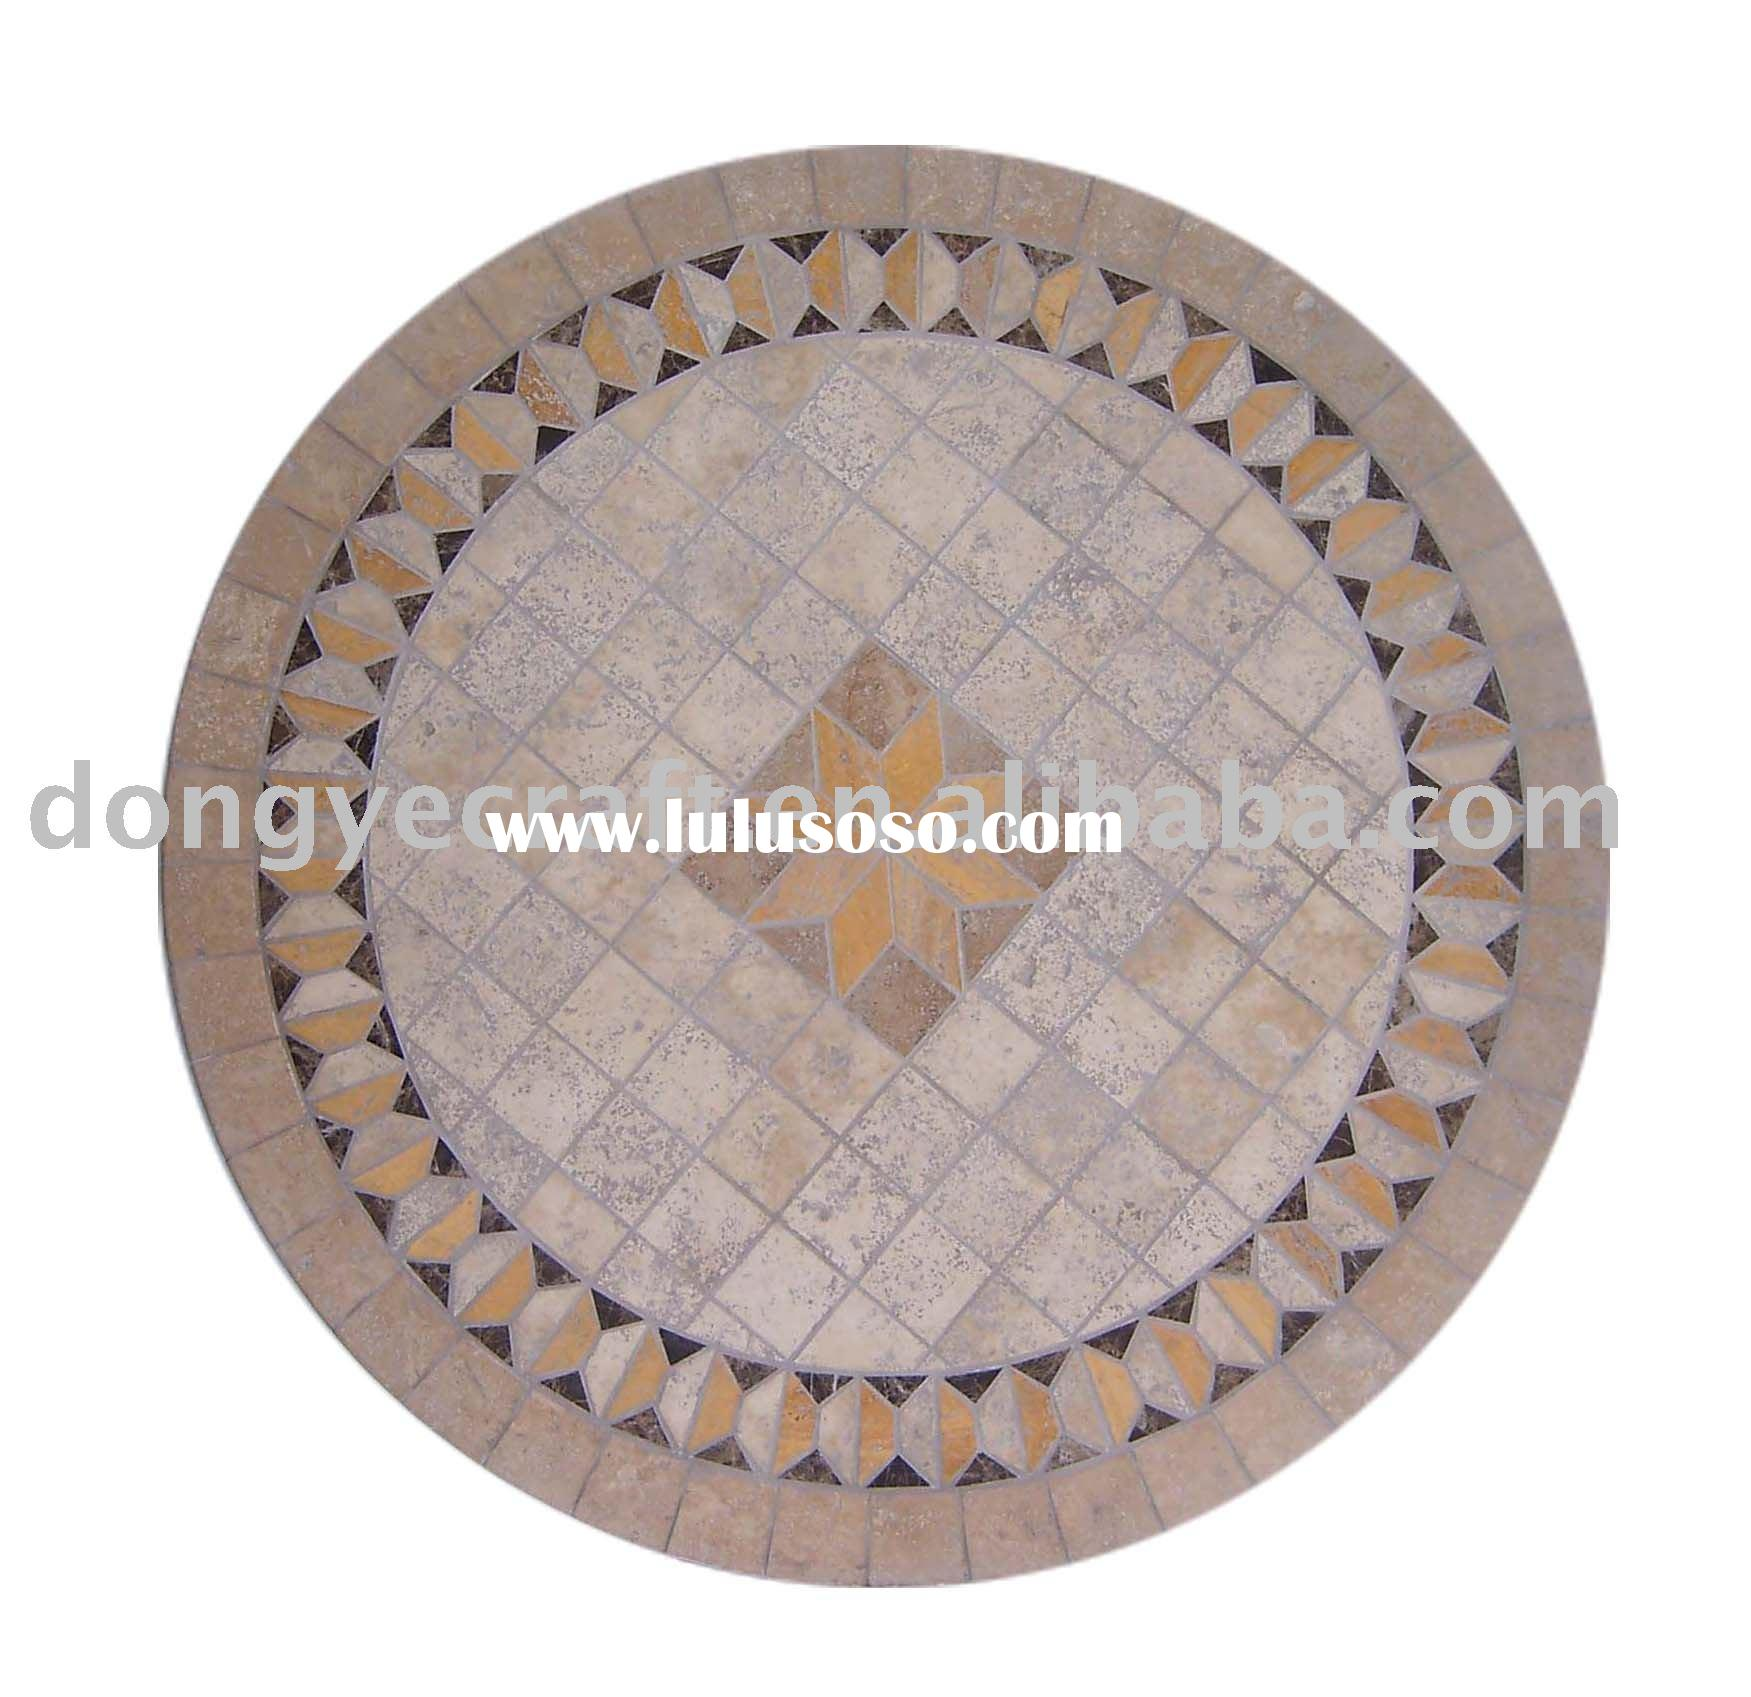 Marble table top(table tops,marble table tops,Mosaic pattern table top)